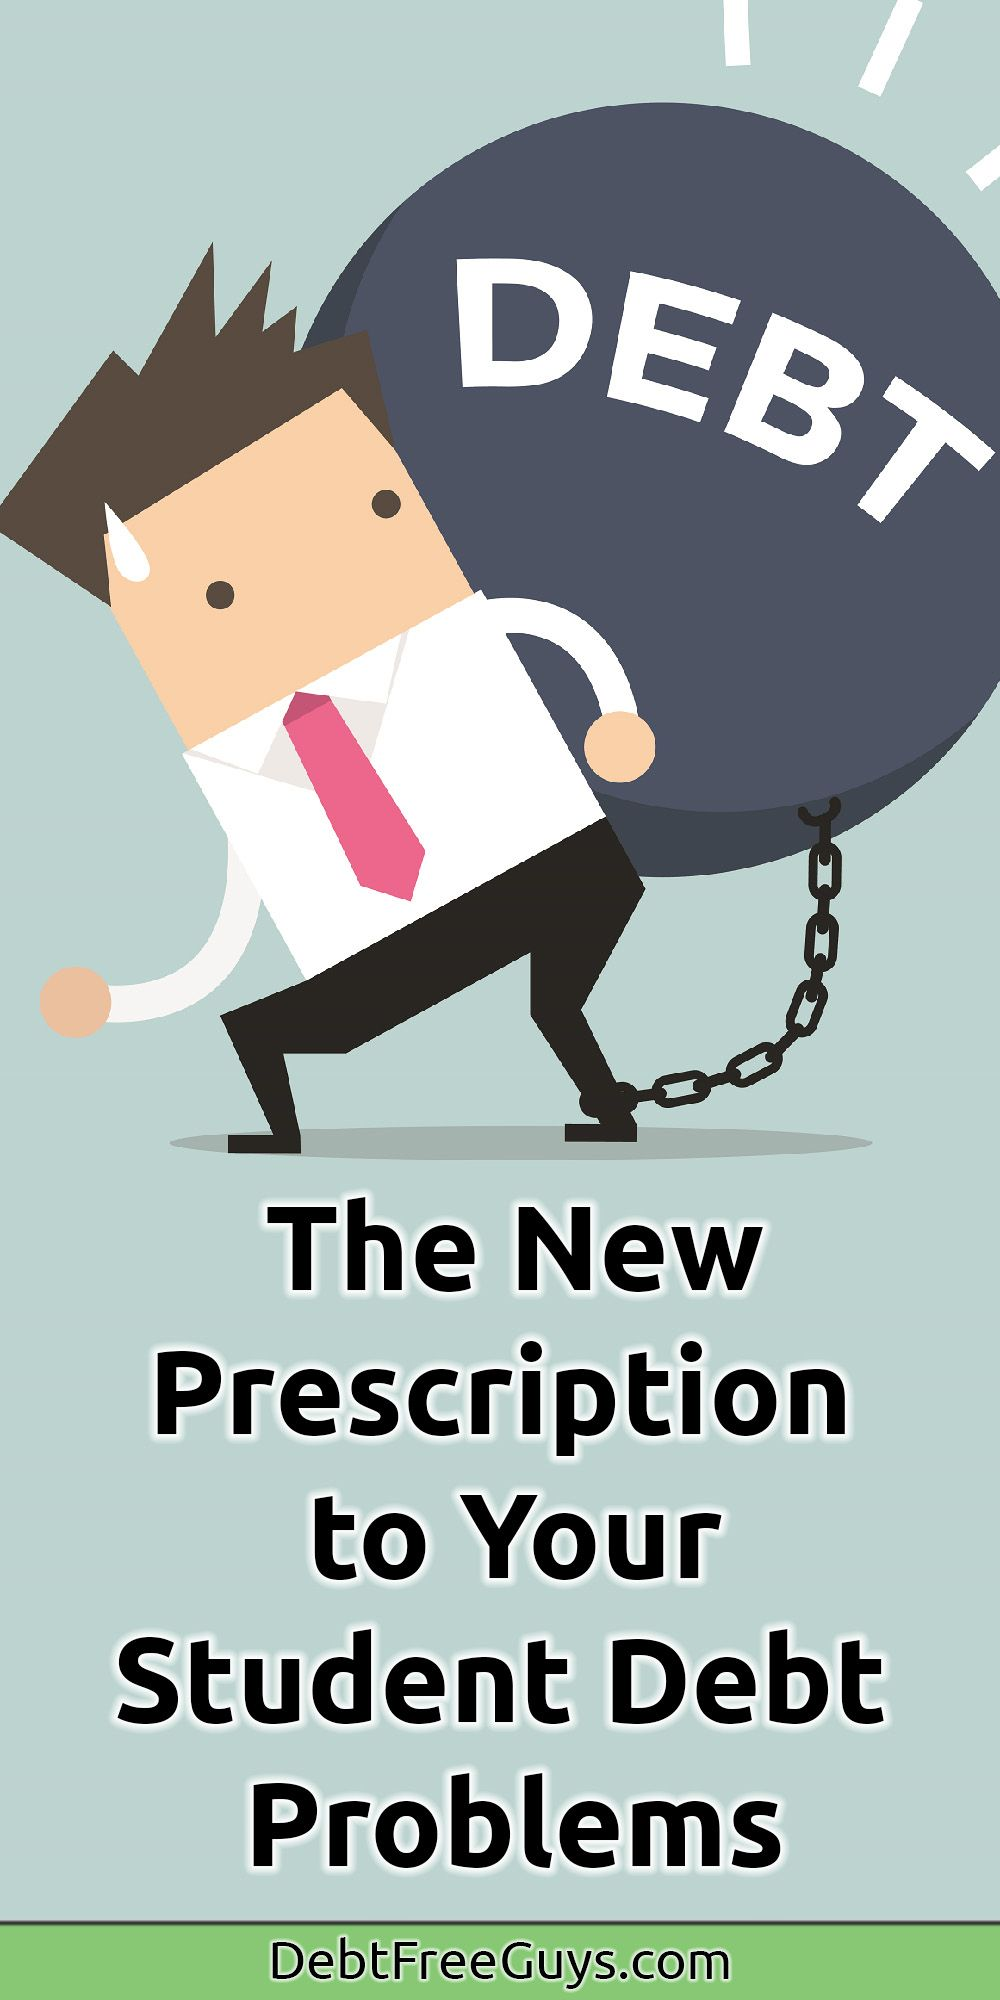 Get Your Prescription For Your Student Loan Ills From This Doc Debt Relief Programs Debt Relief Debt Relief Companies